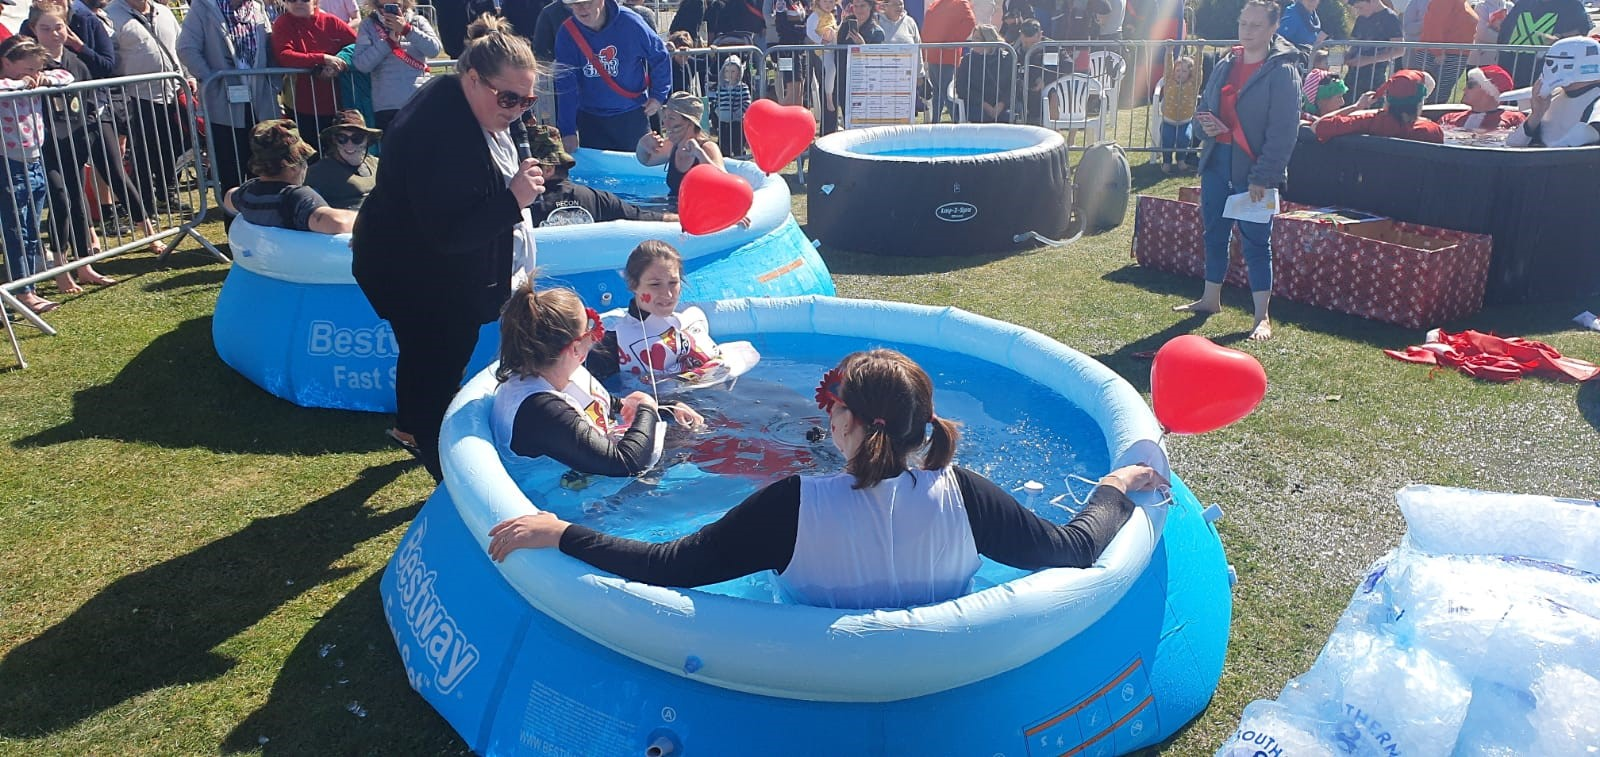 people sat in inflatable pool at fundraising event